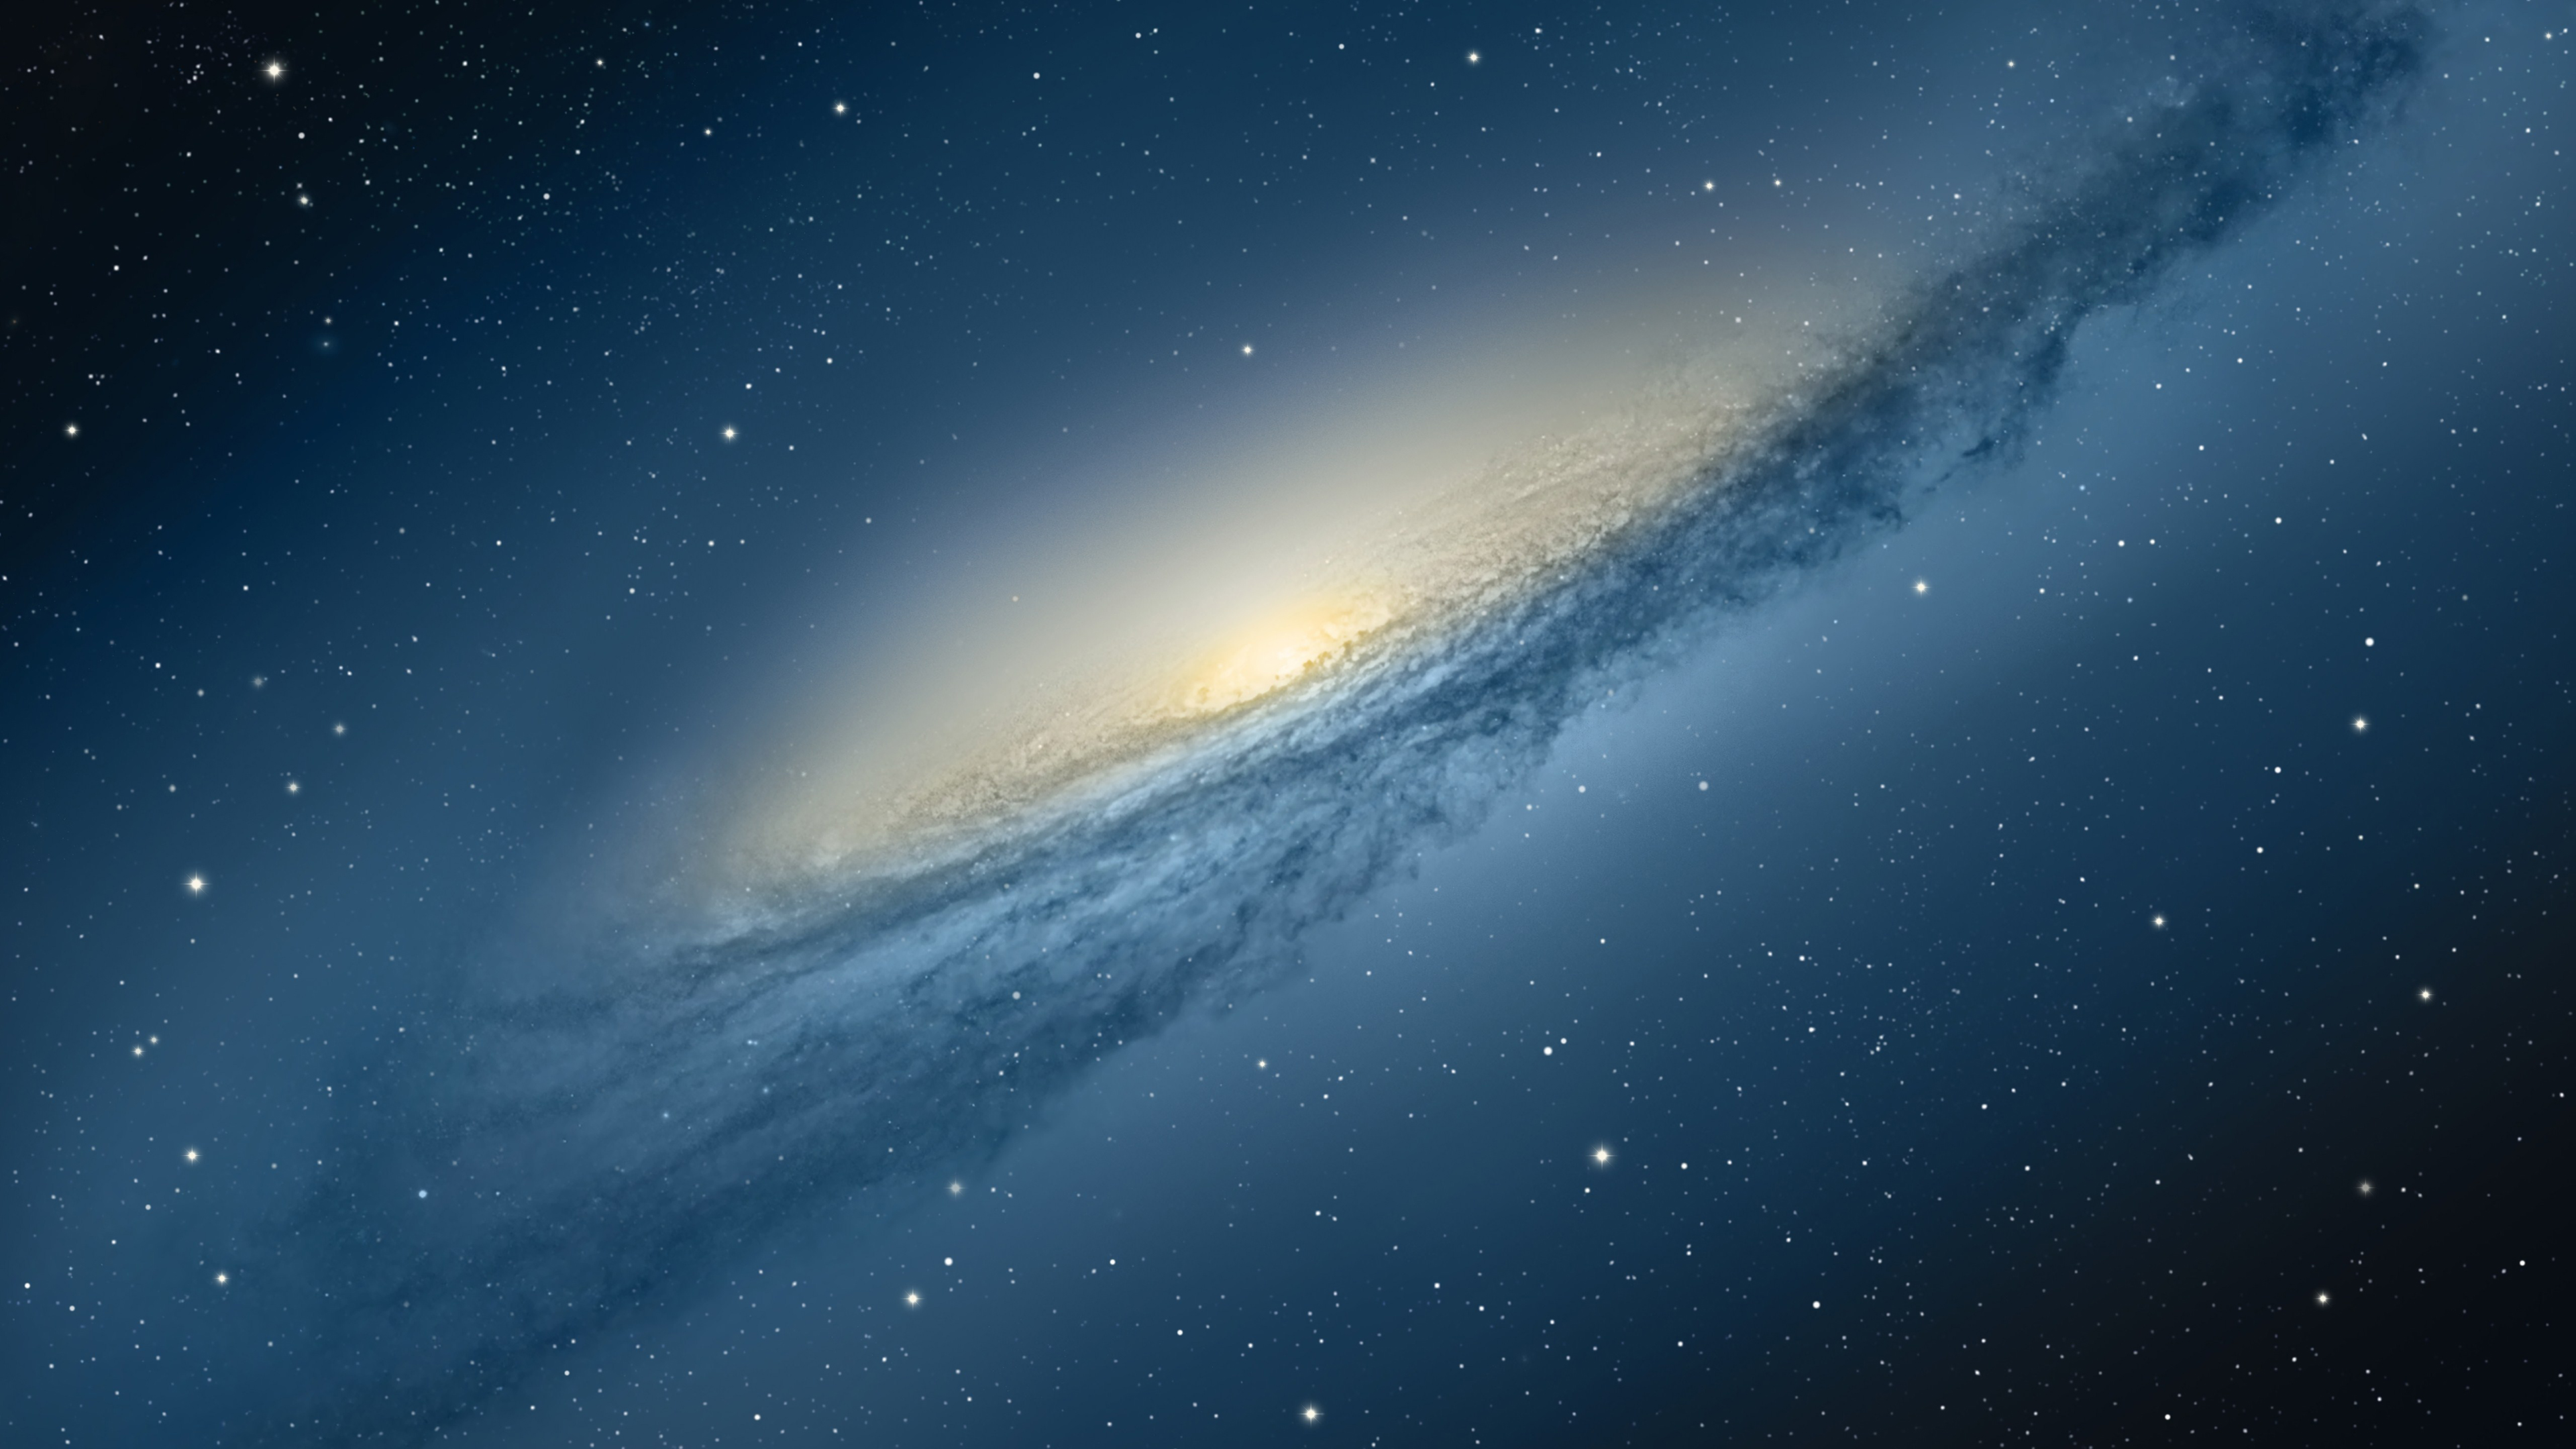 justpictcom 4k Resolution Wallpaper Space 3840x2160